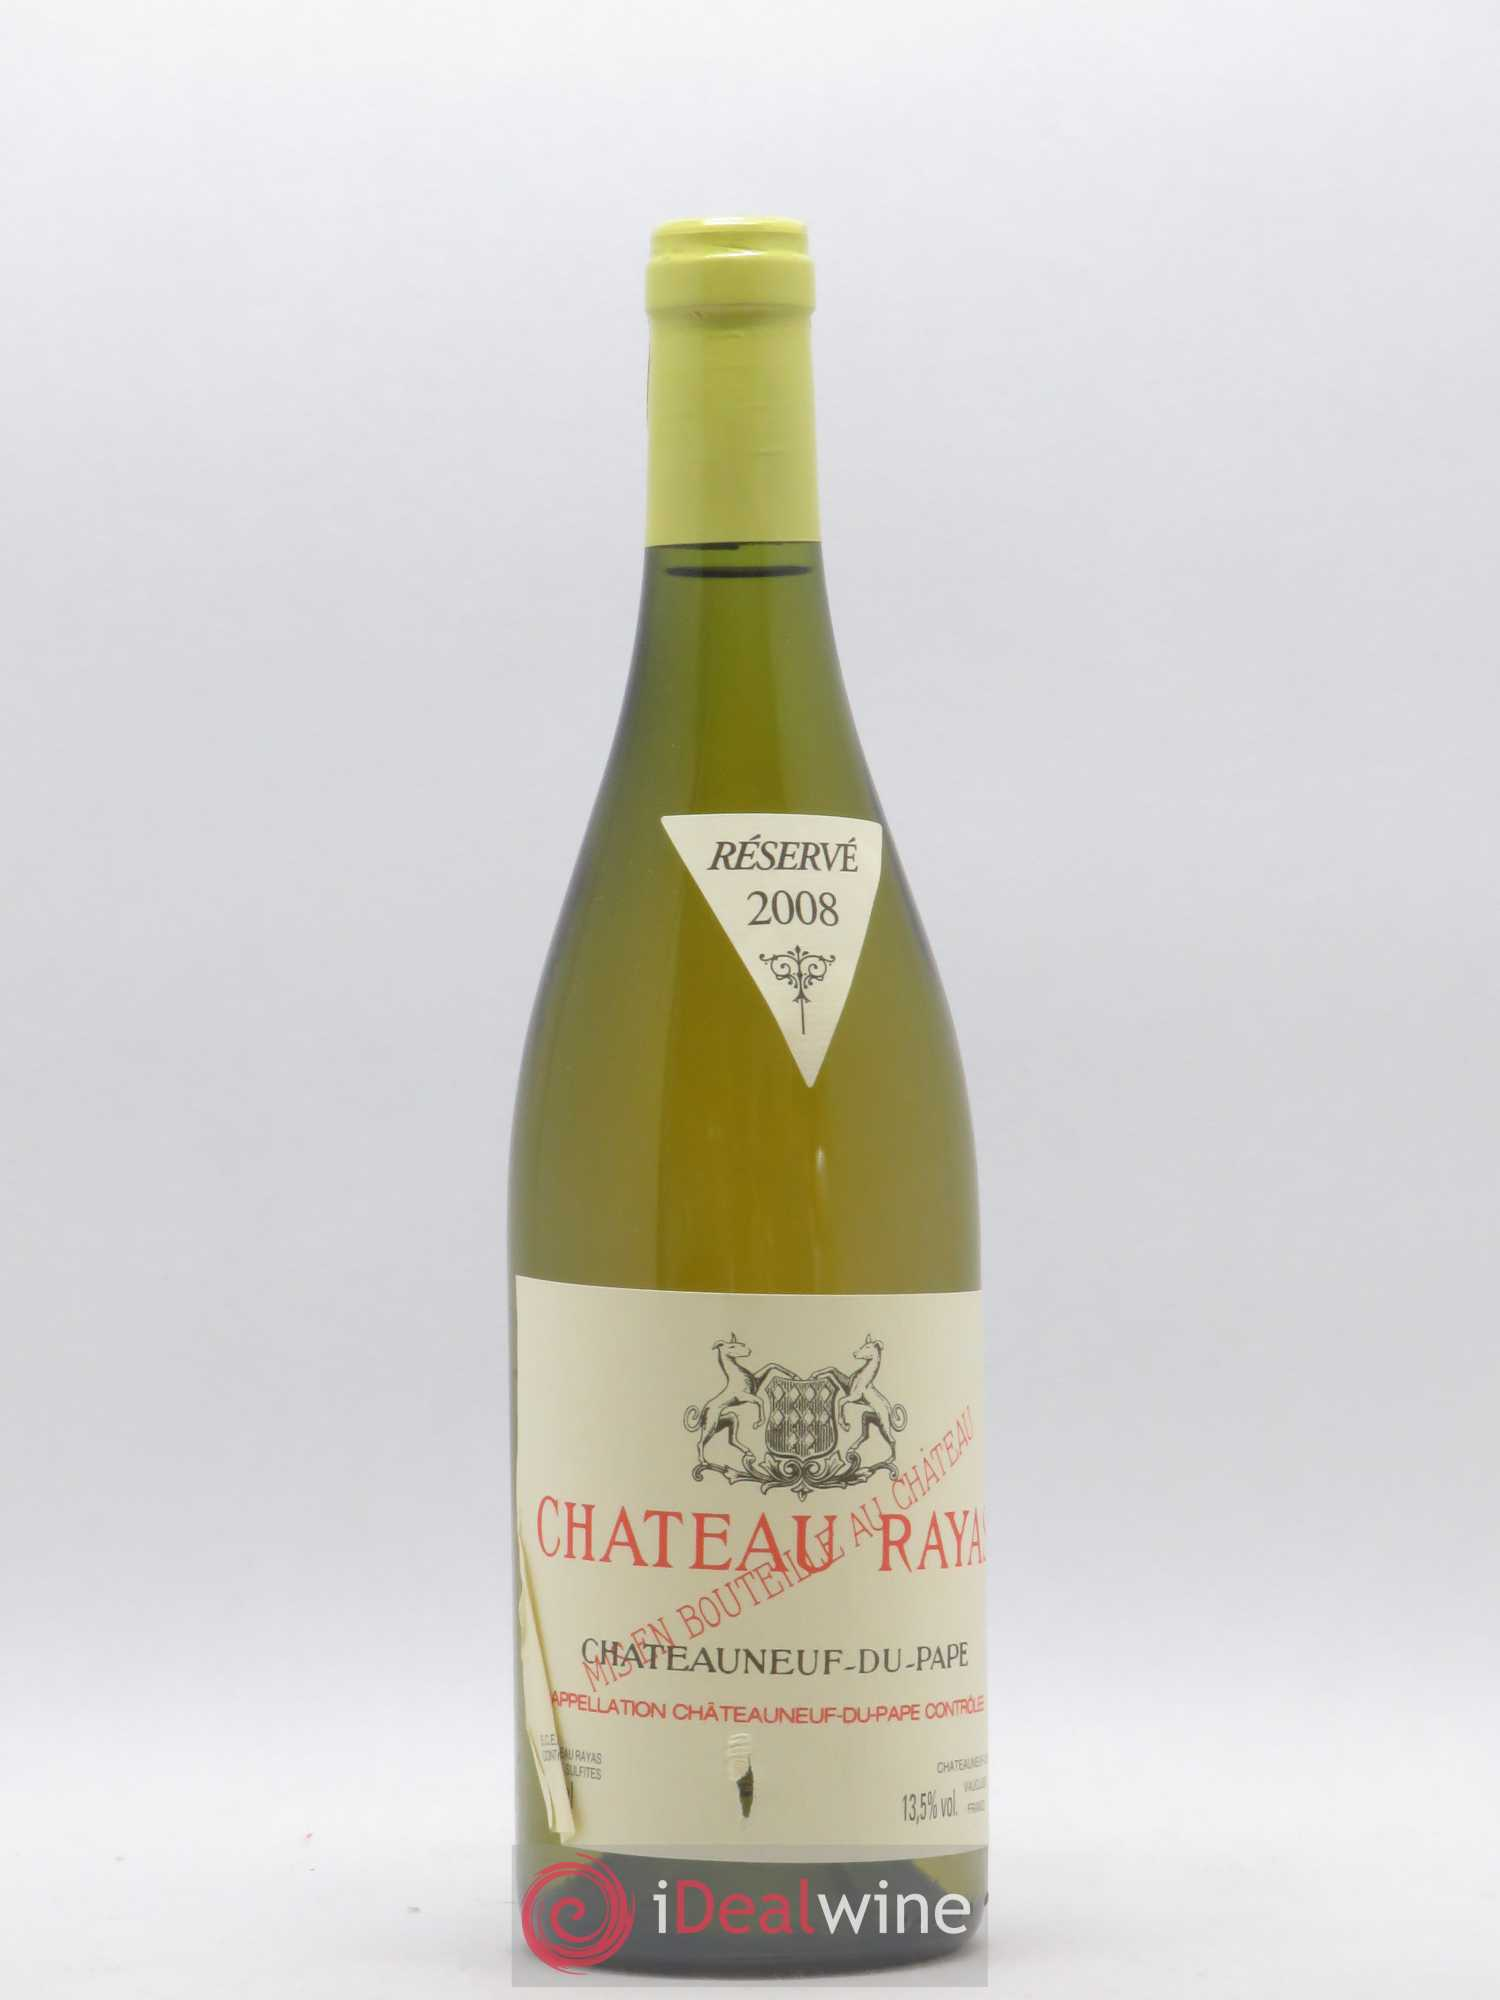 Châteauneuf-du-Pape Château Rayas Reynaud  2008 - Lot of 1 Bottle